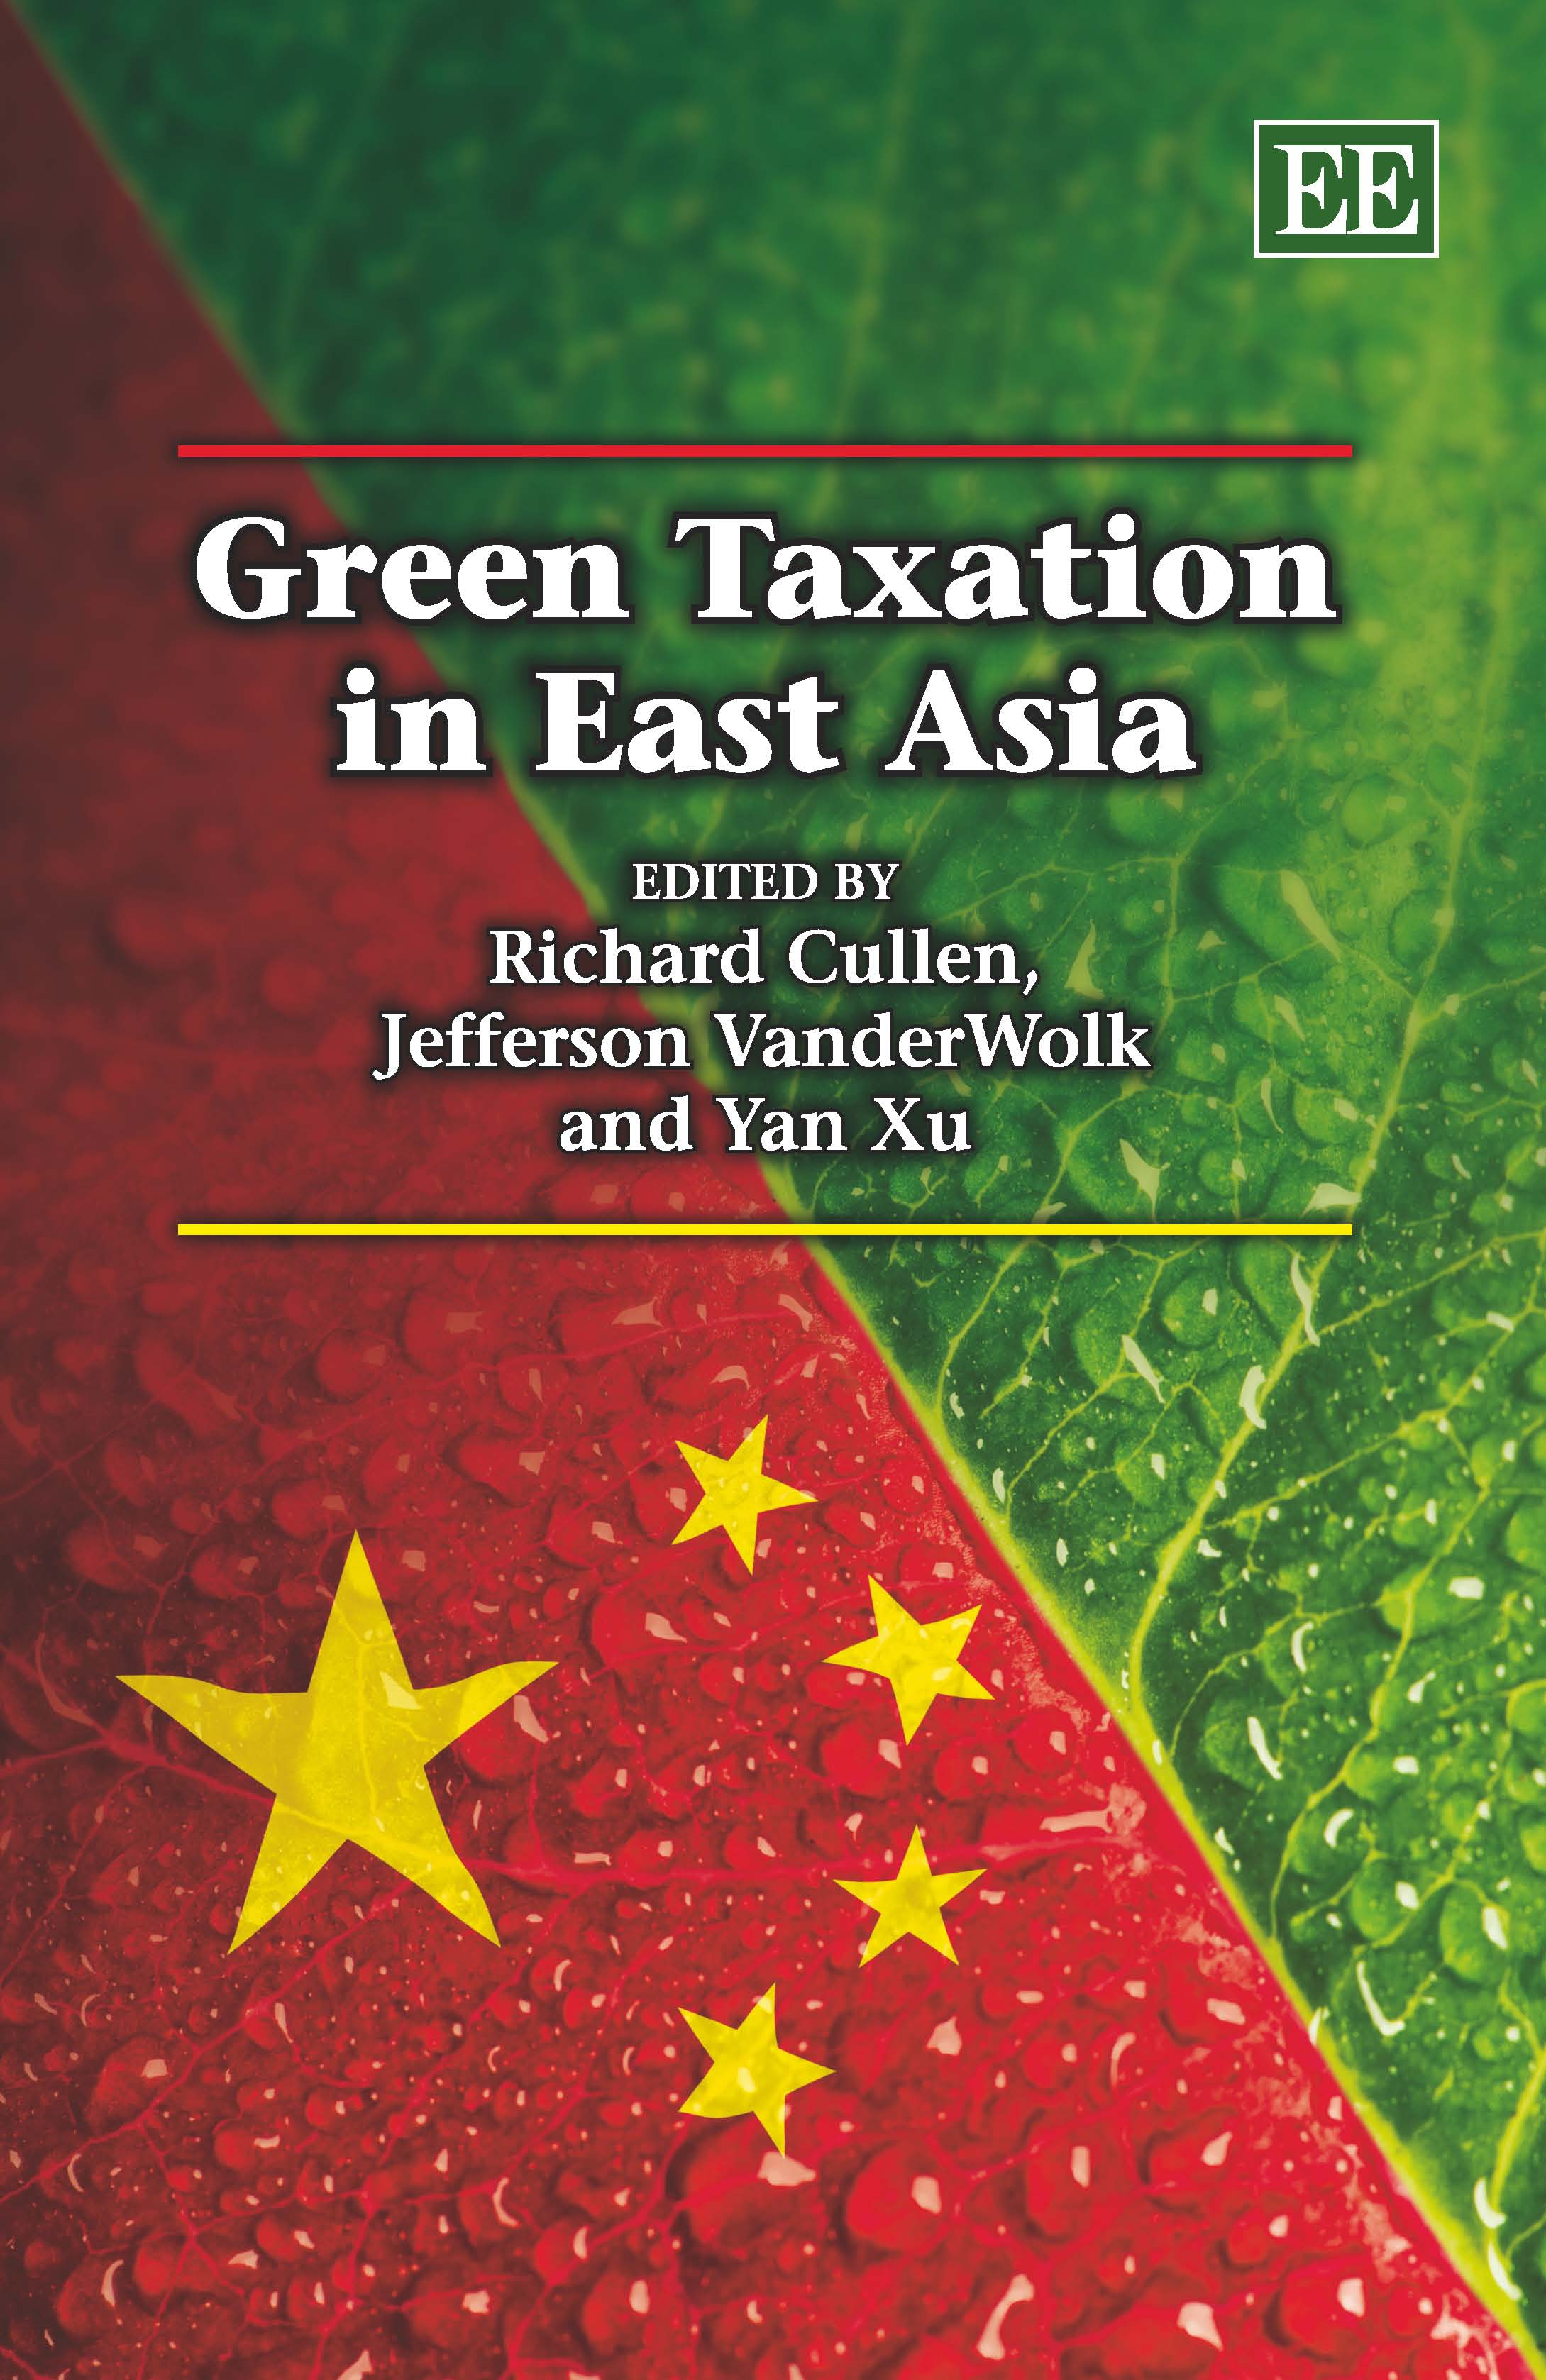 Green Taxation in East Asia